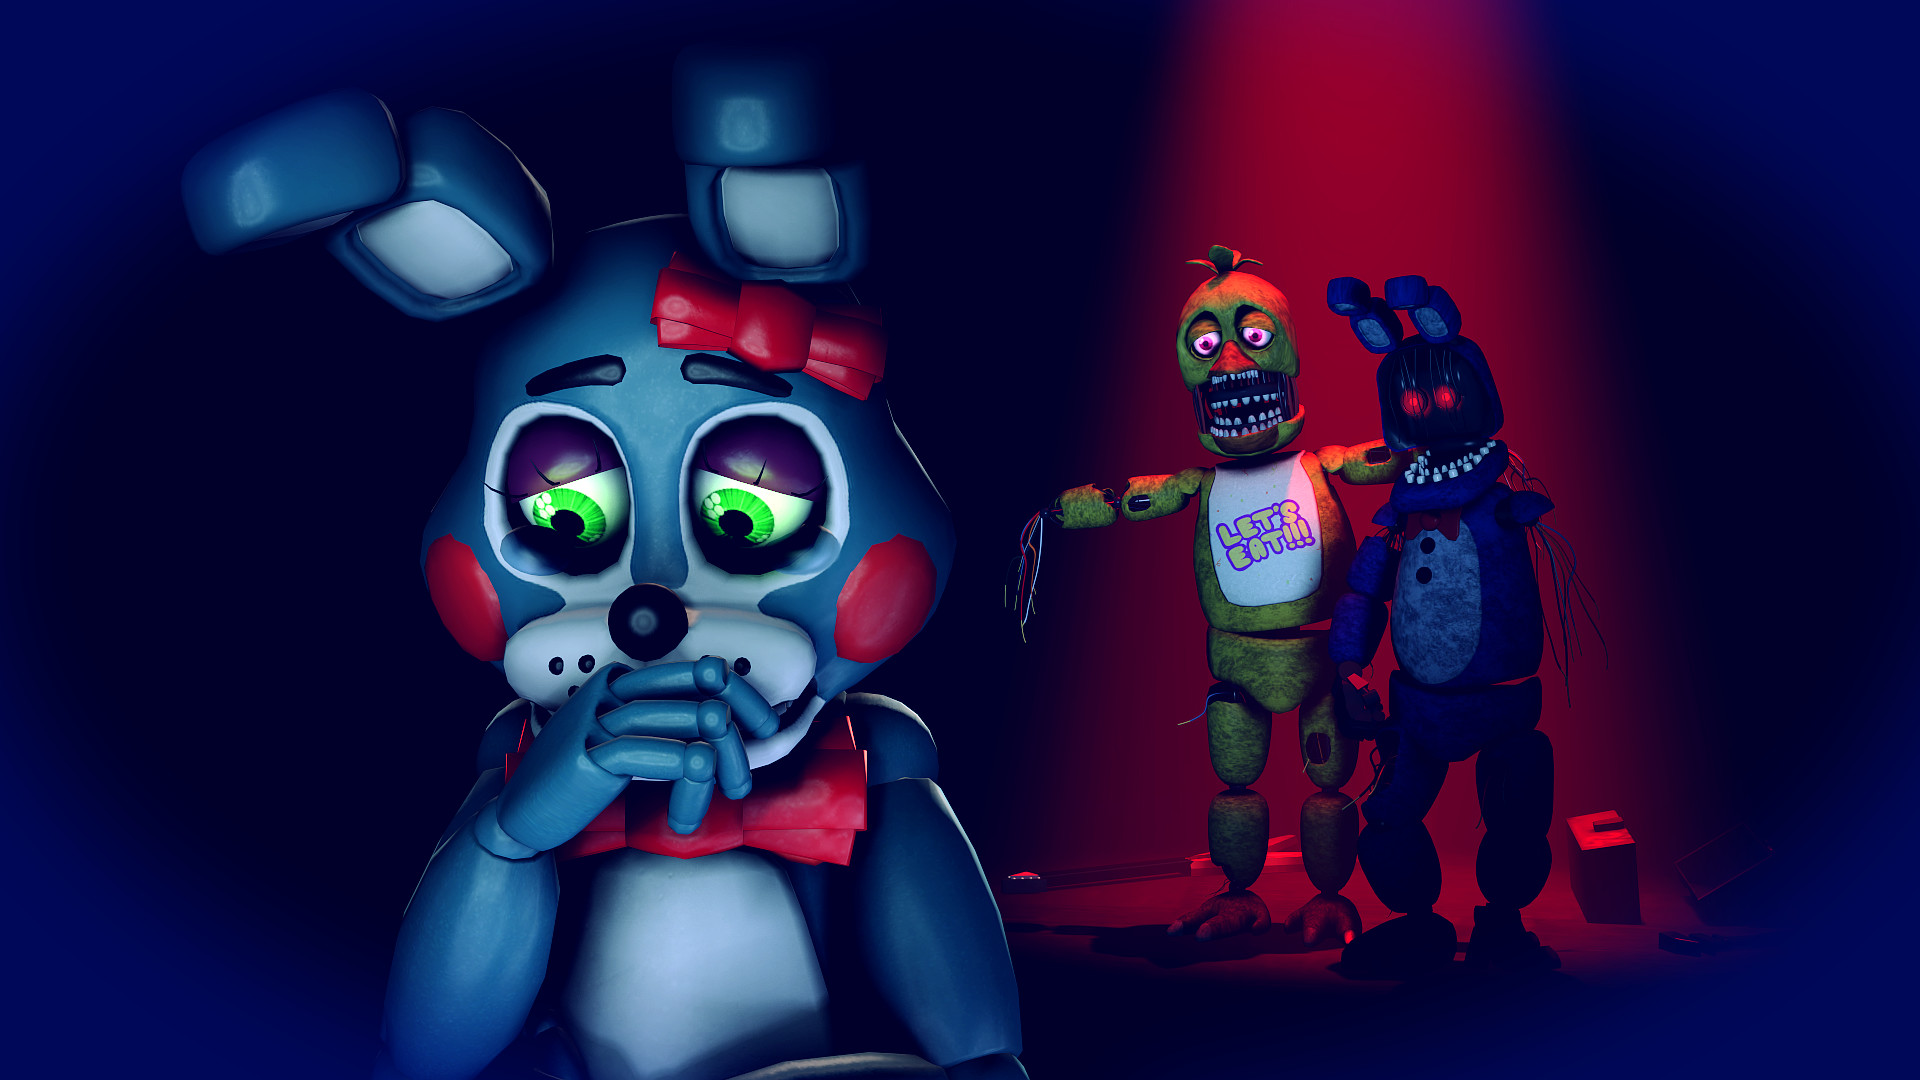 1920x1080 ... The one I love...broke my heart-Toy Bonnie by TalonDang